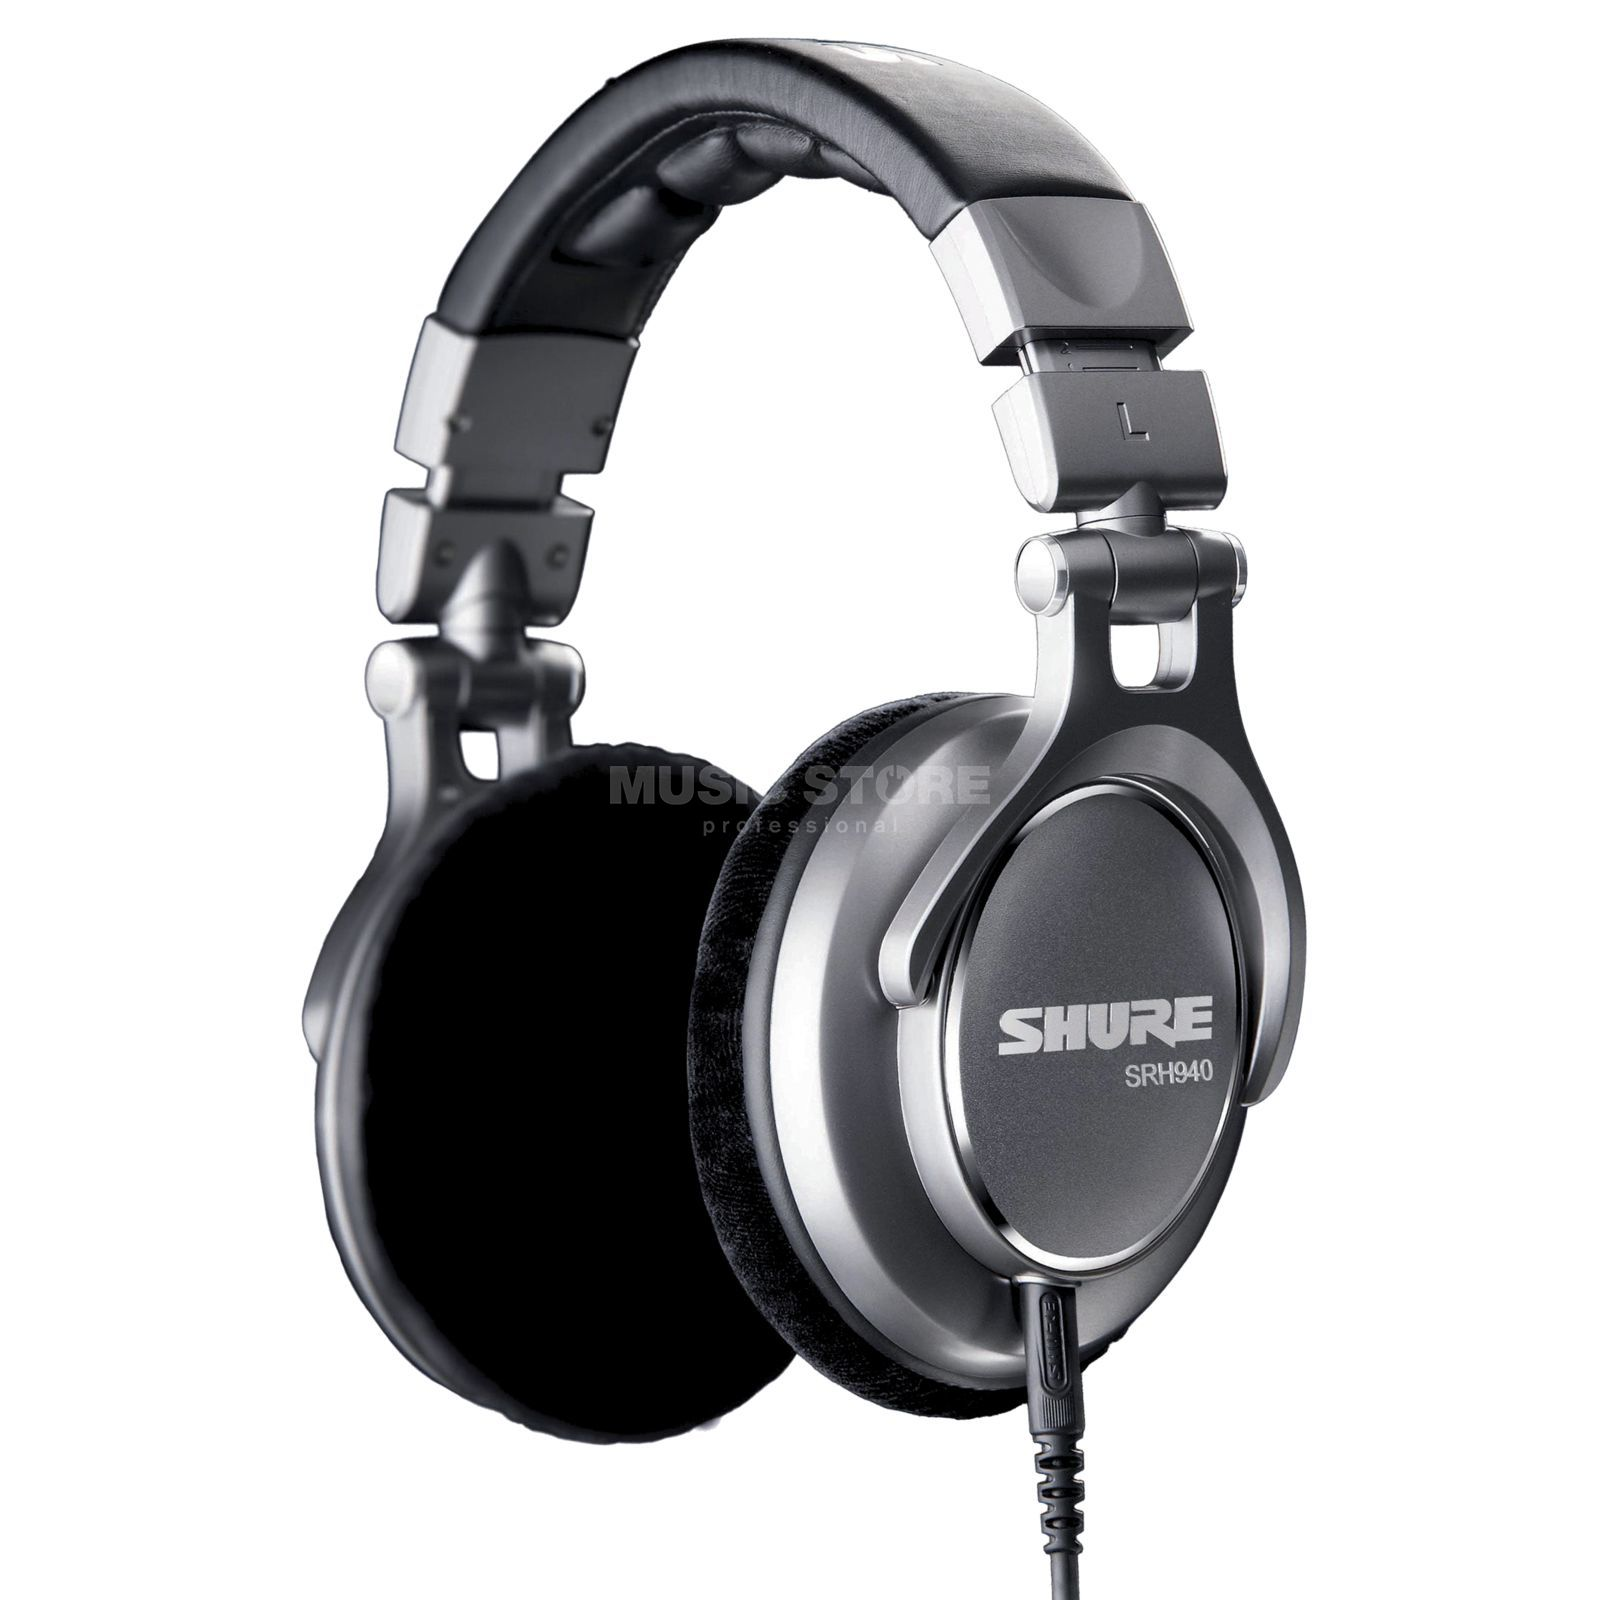 Shure SRH940 Professional Headphones Product Image